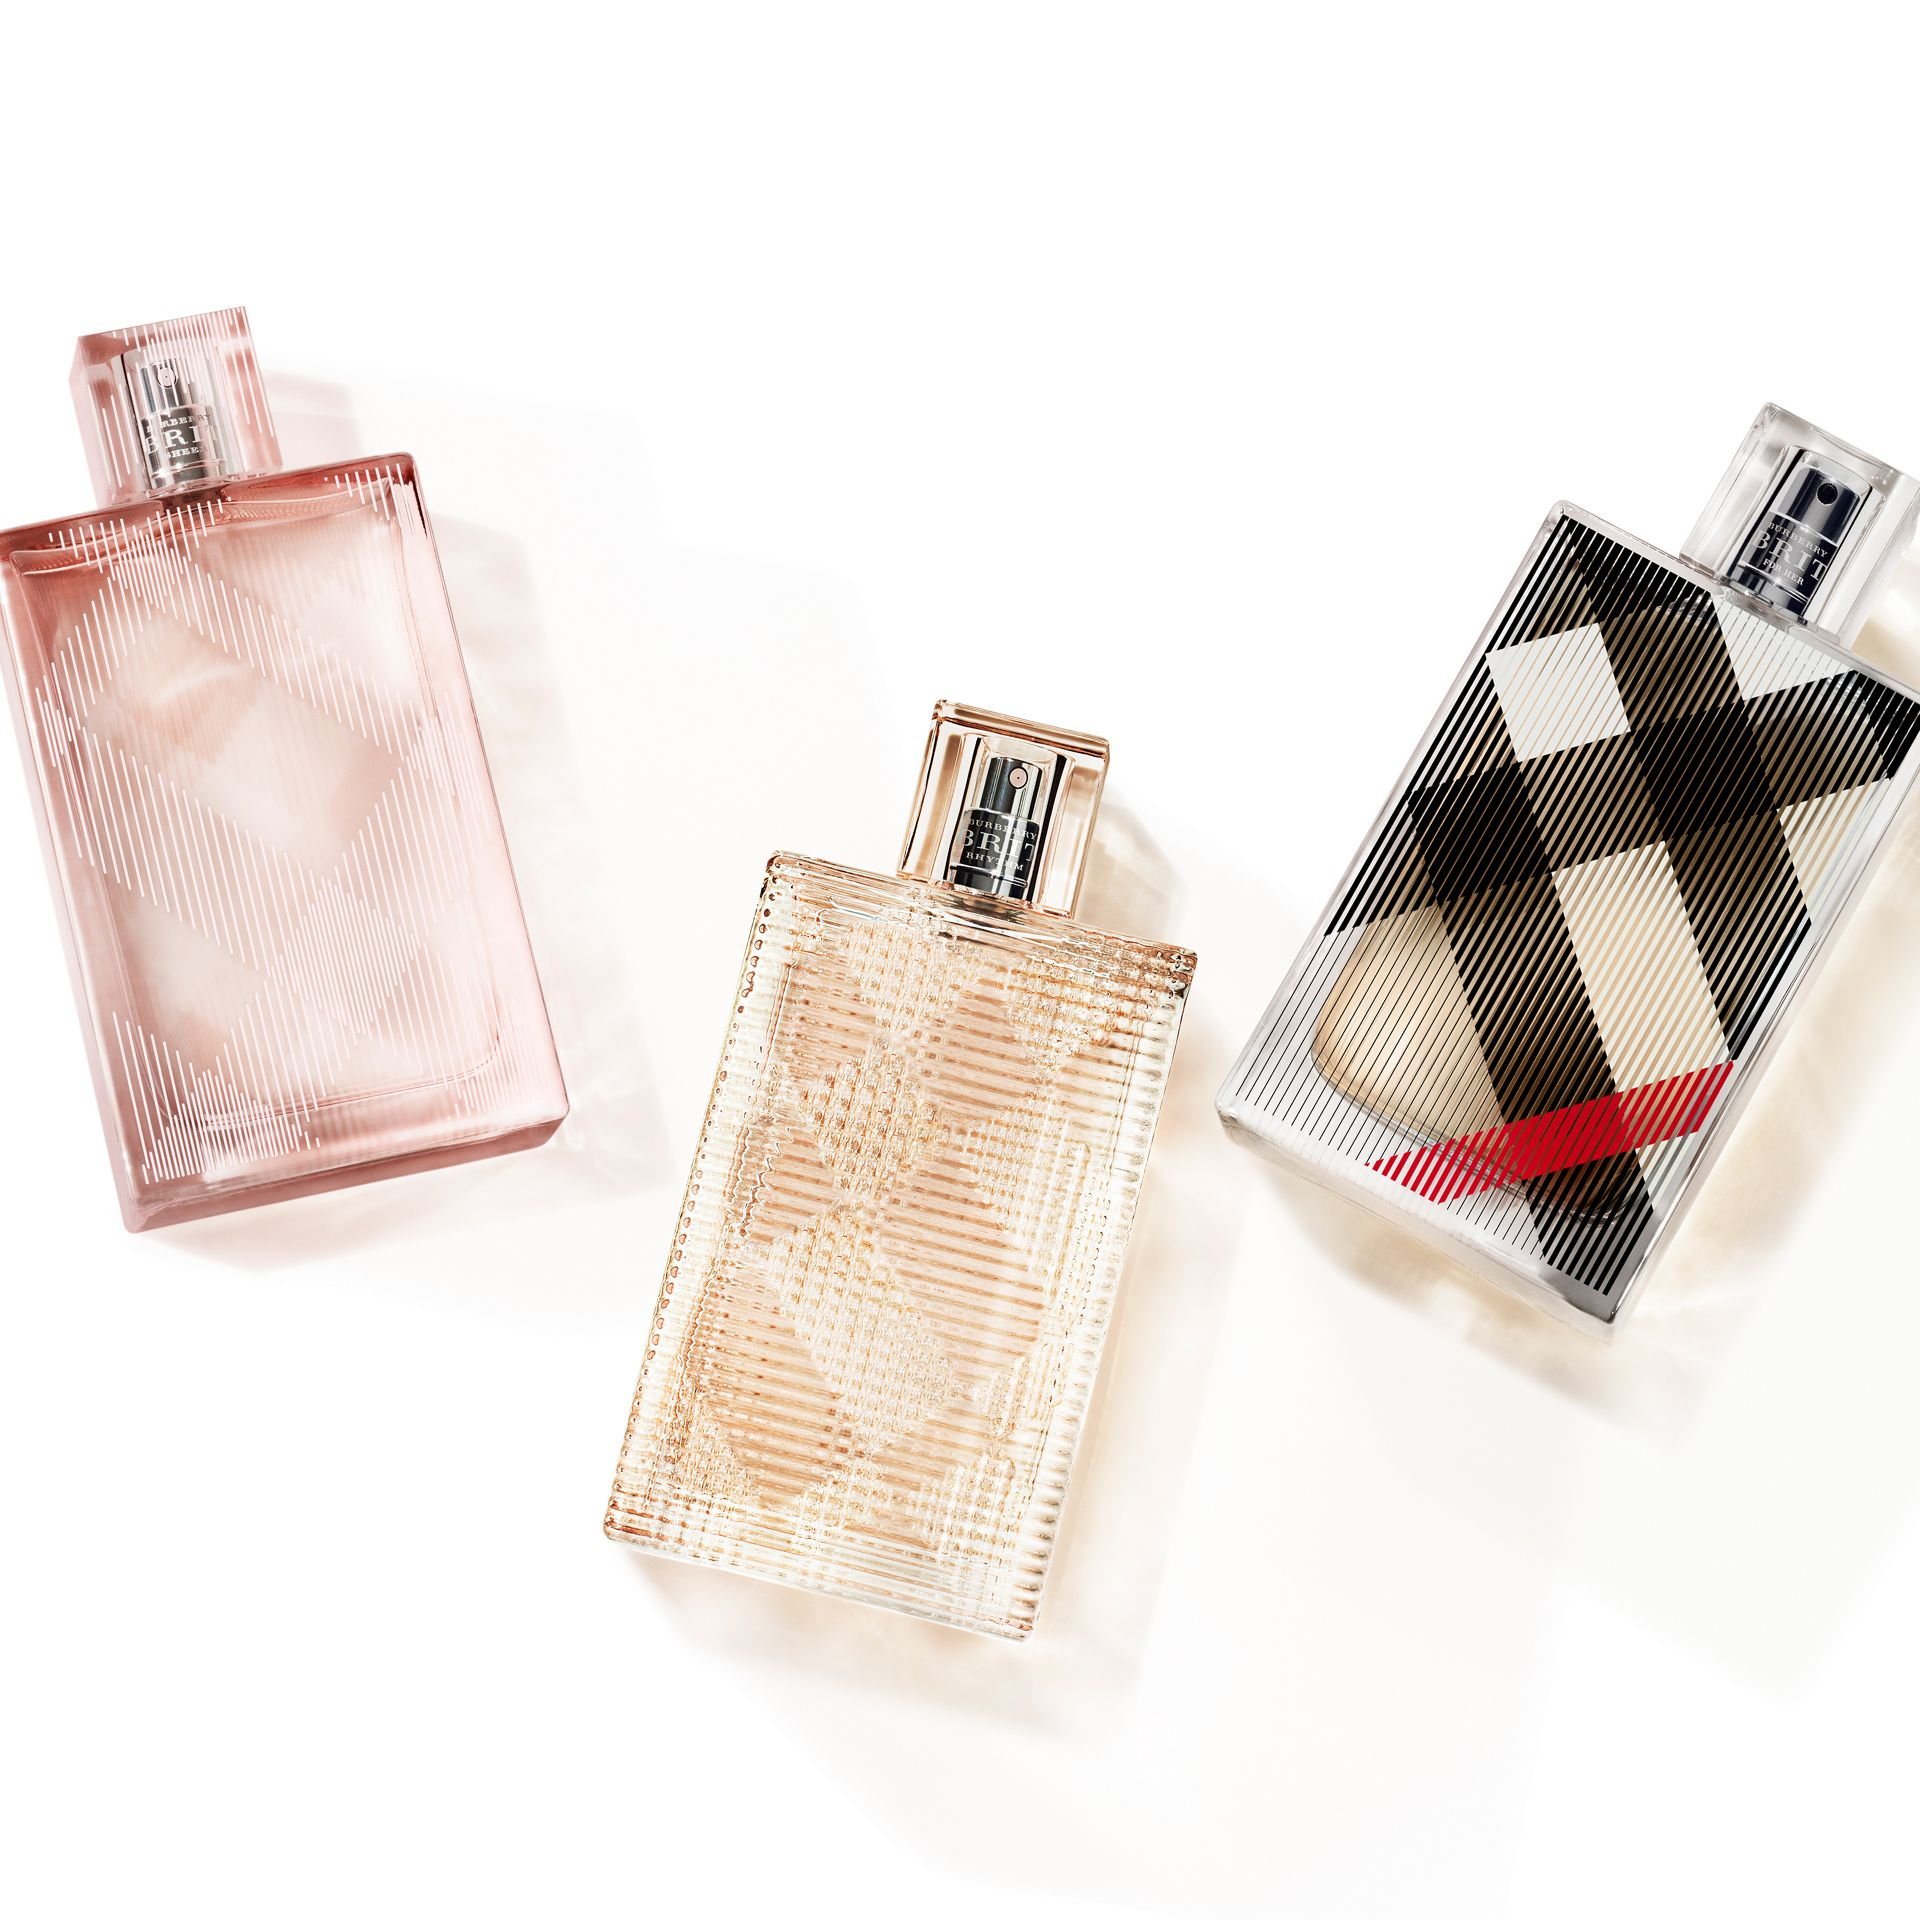 Burberry Brit For Her Eau de Toilette 100 ml - immagine della galleria 4